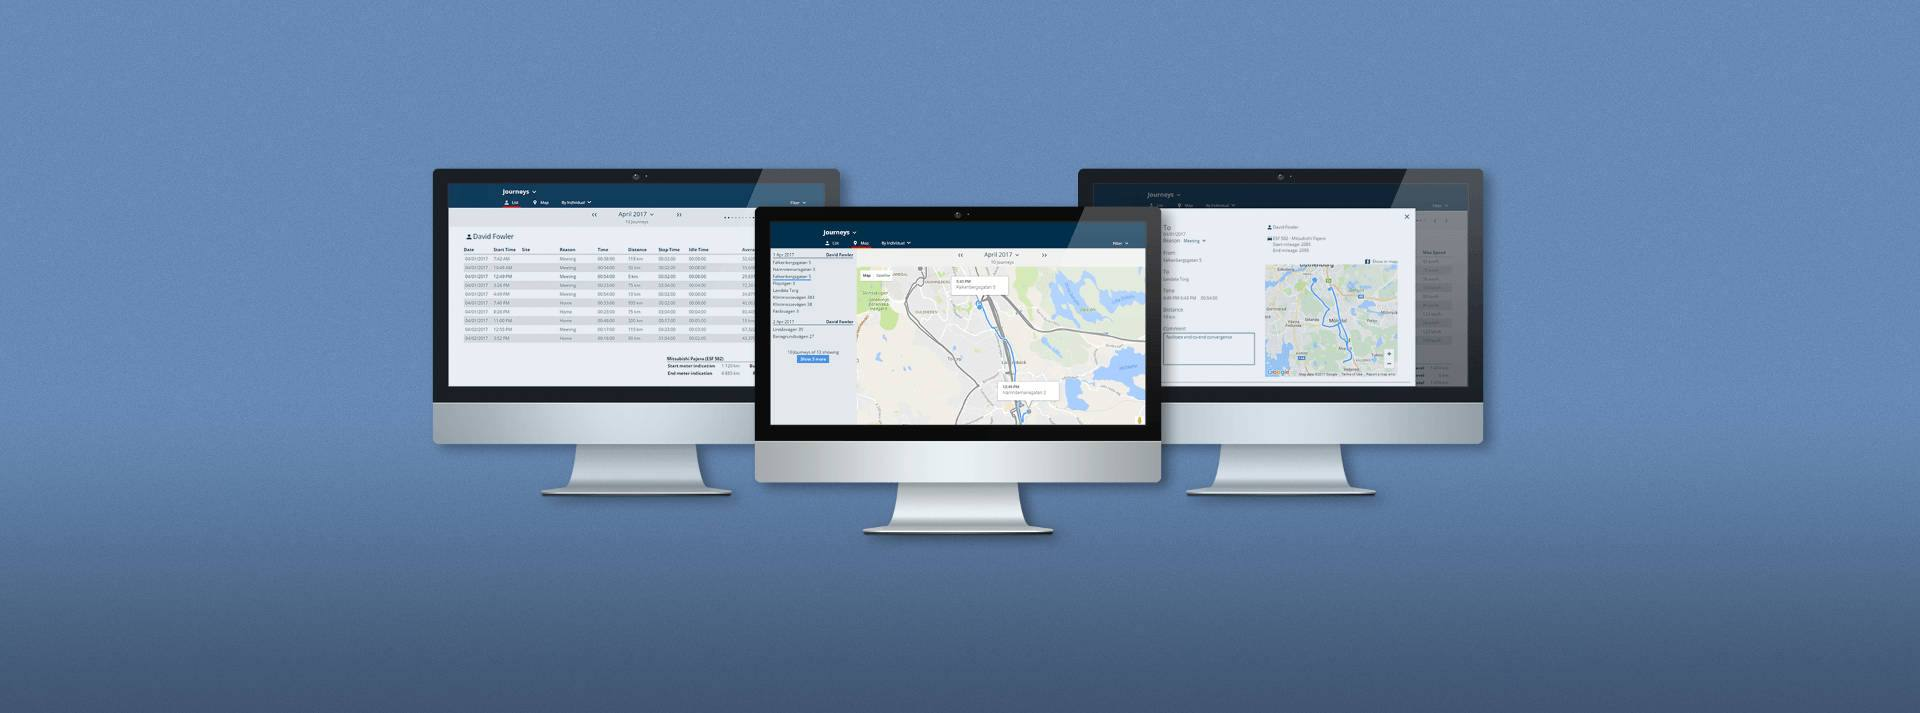 vehicle fleet web application